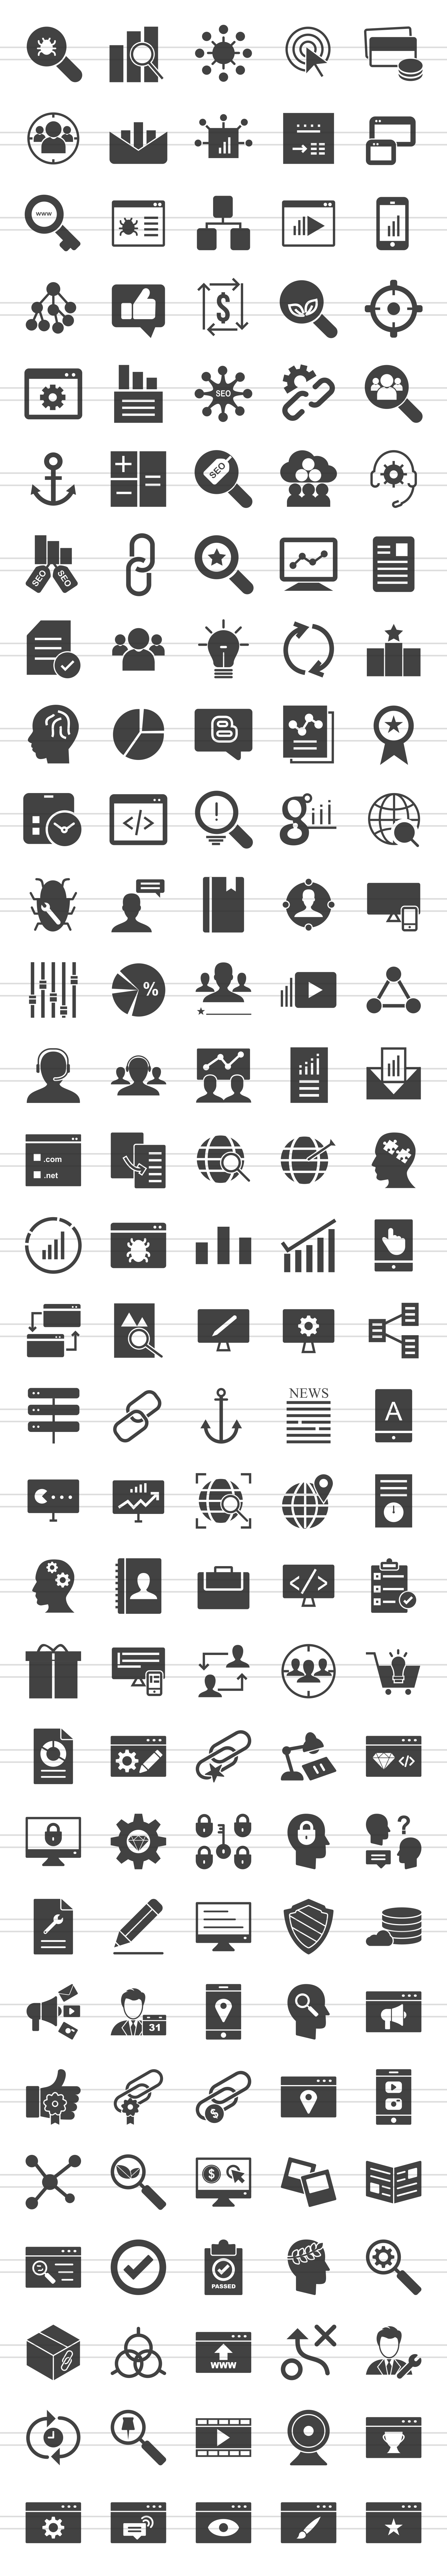 150 IT Services Glyph Icons example image 2